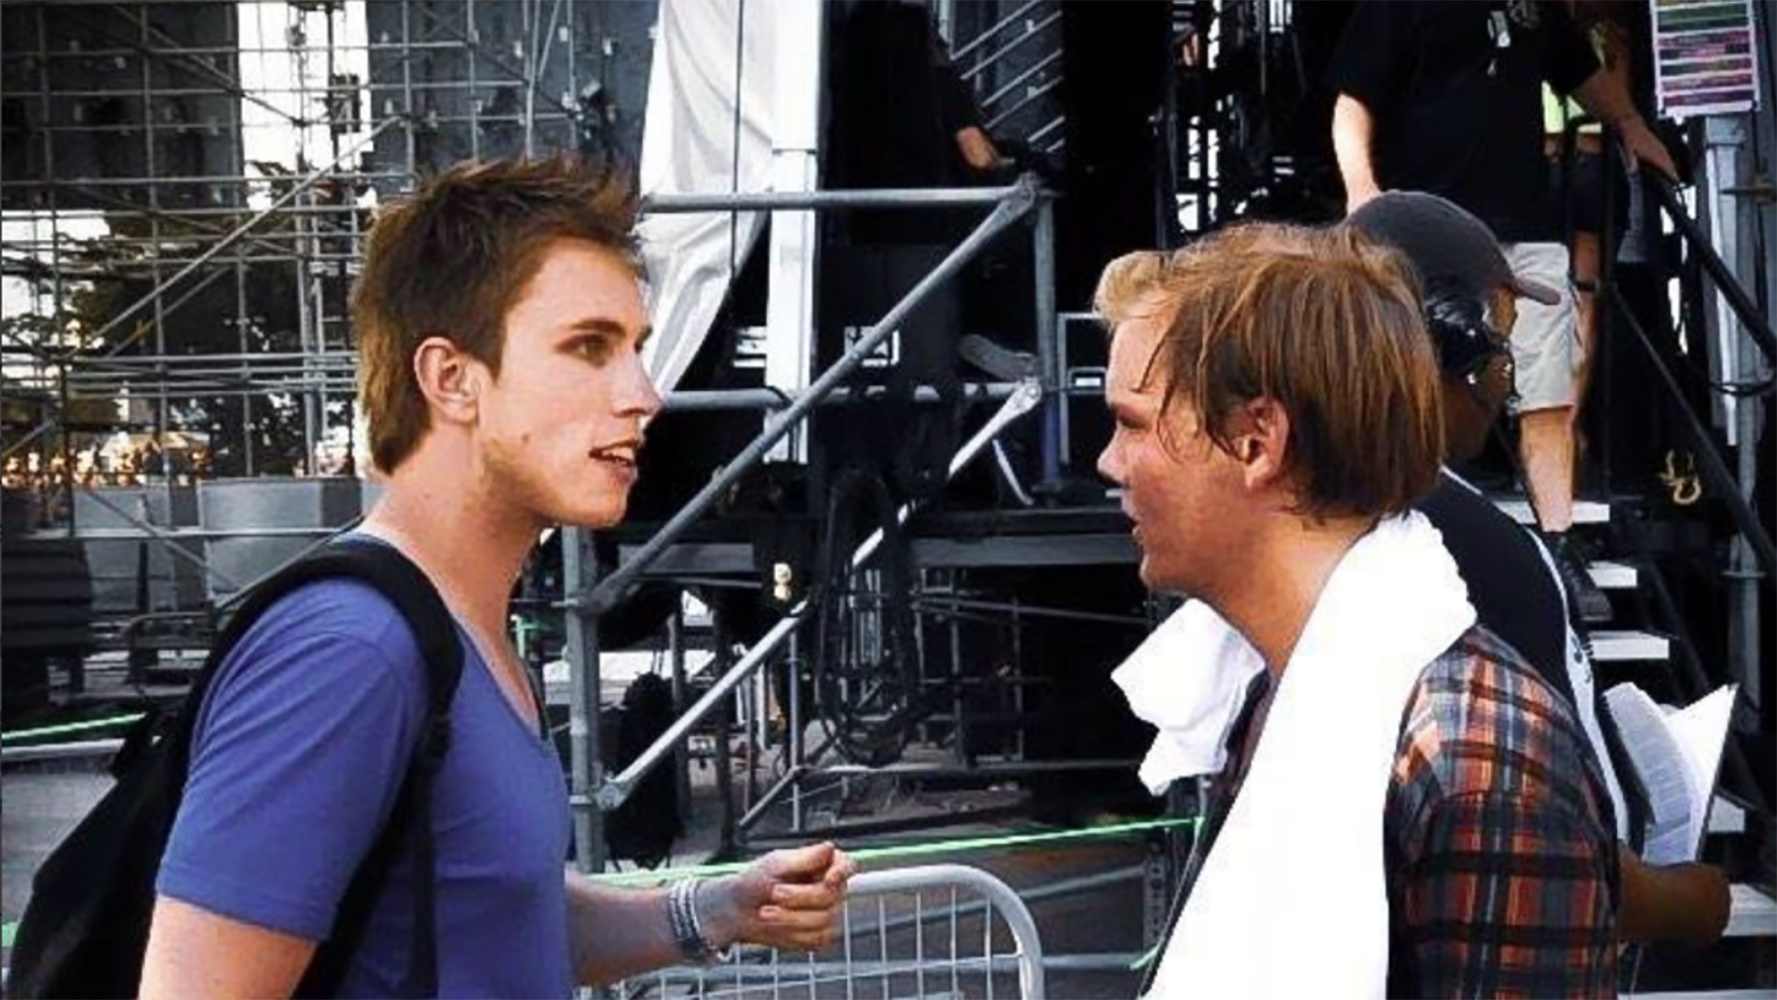 Released 8 Years Ago: Avicii & Nicky Romero – I Could Be The One